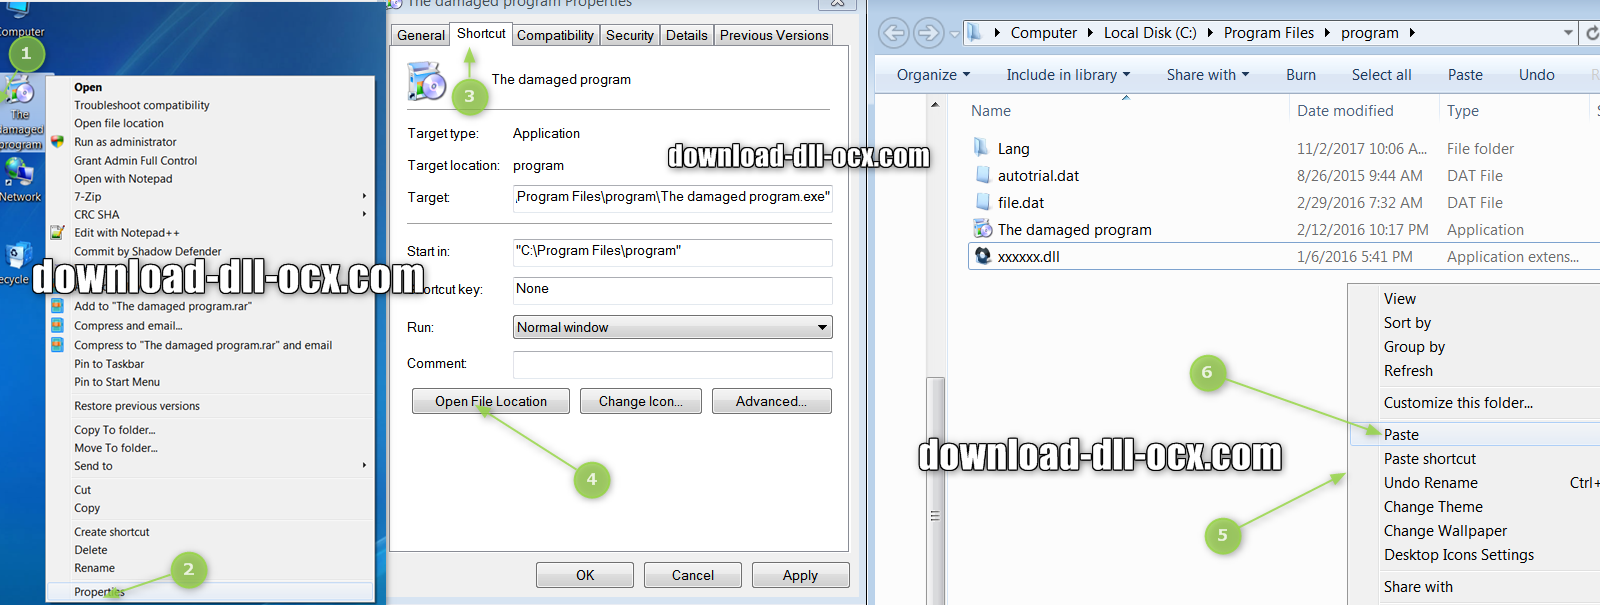 how to install Qchart.dll file? for fix missing